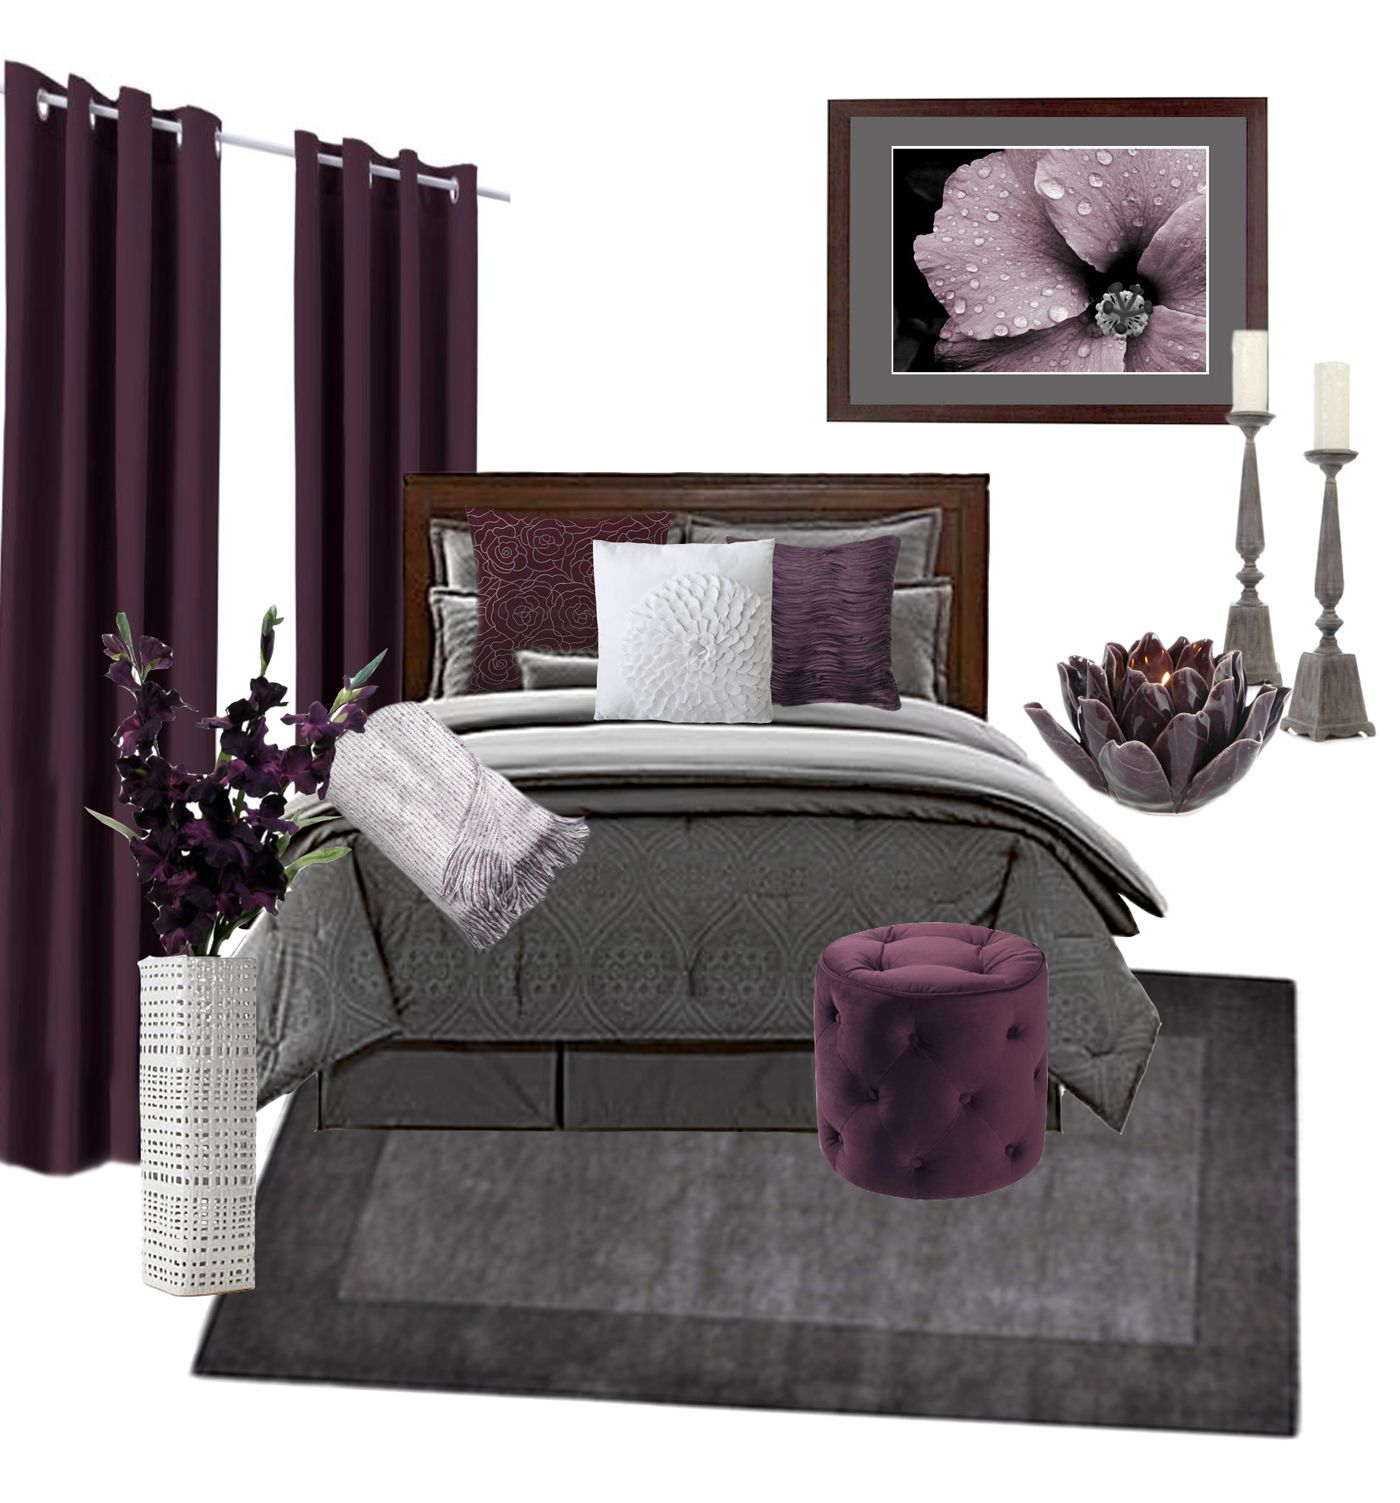 Best 25 plum bedding ideas on pinterest plum bedroom for Bedroom quilt ideas